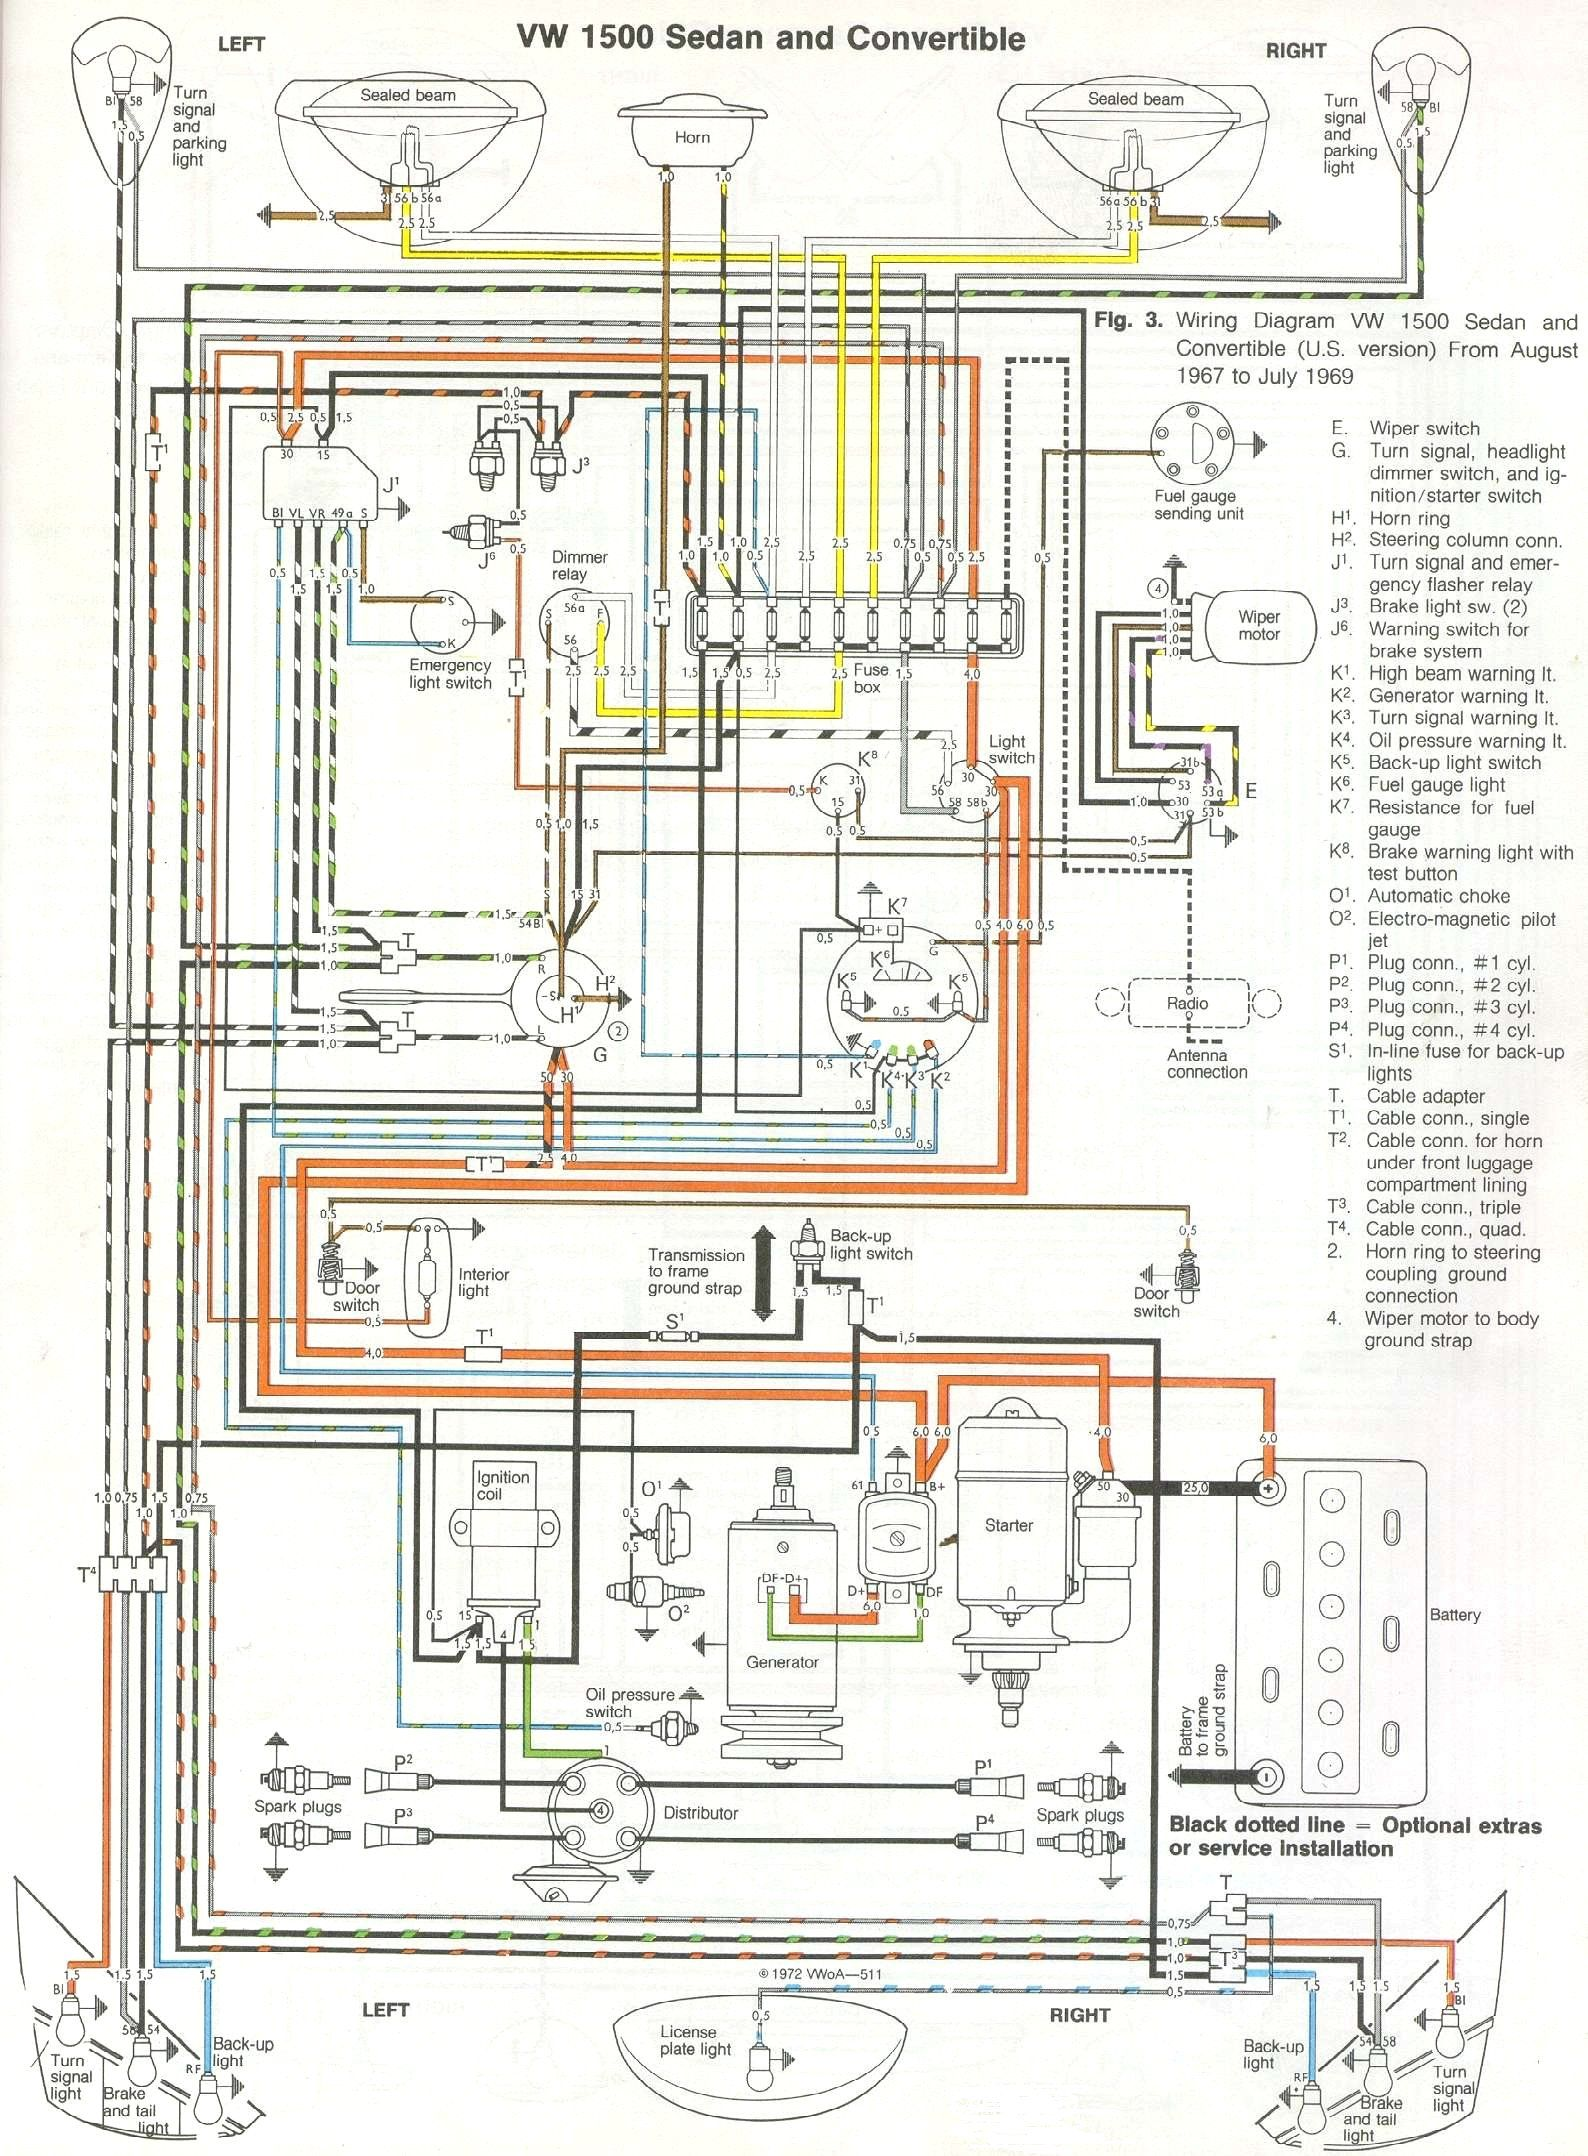 Marvelous 74 Vw Engine Diagram Wiring Library Wiring Cloud Hisonuggs Outletorg